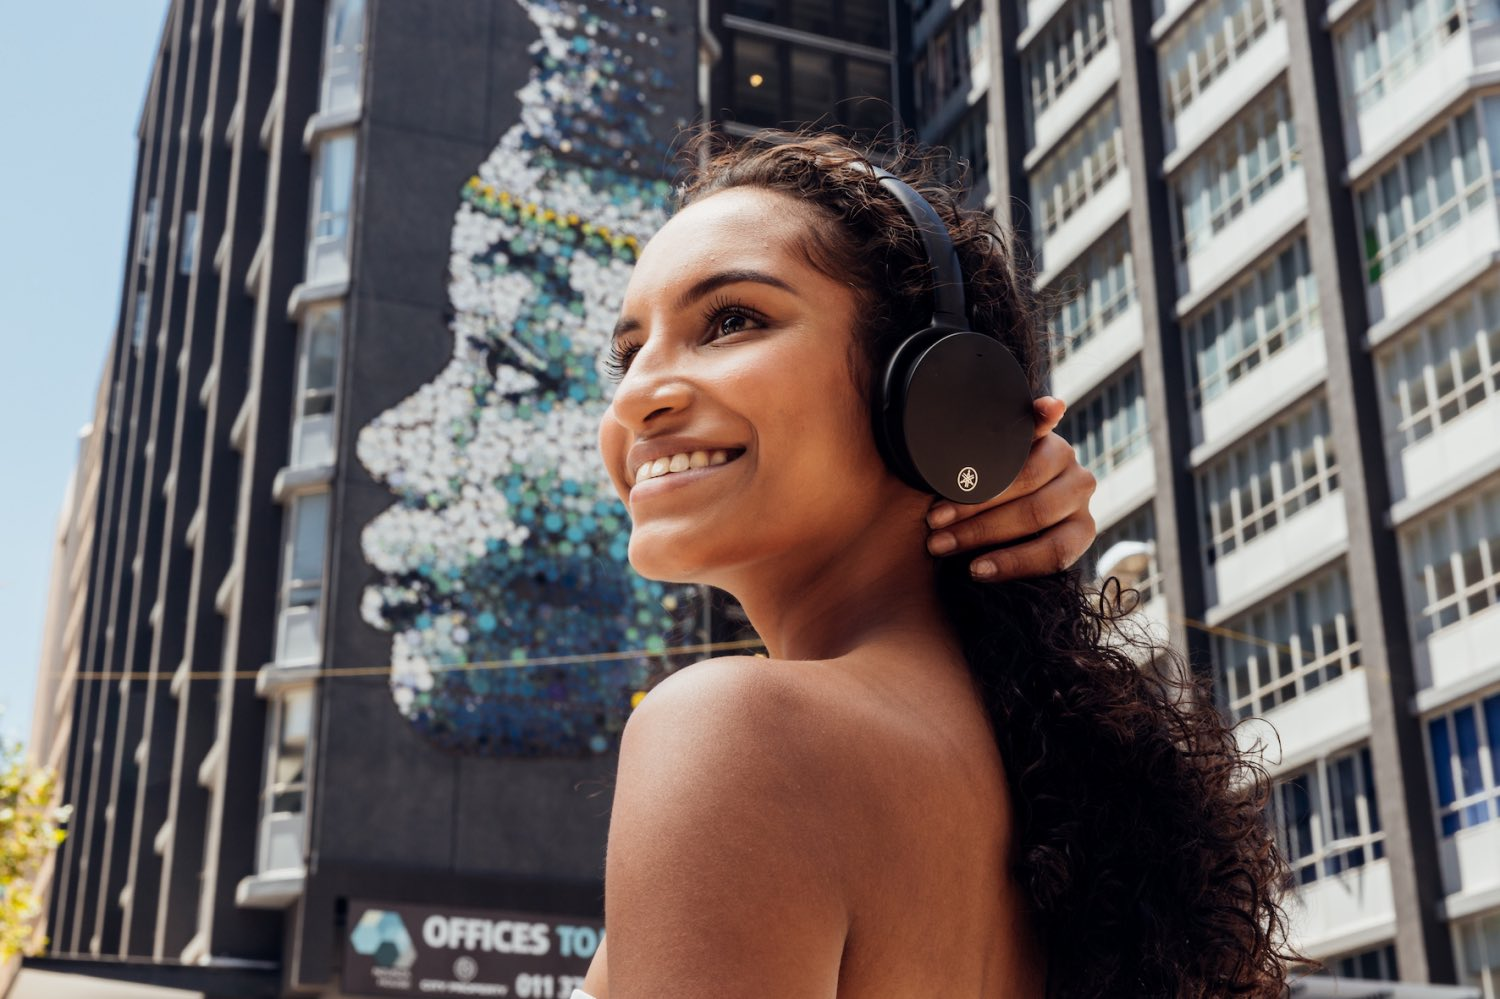 The Yamaha YH-E500 Headphones are now available in South Africa, and after testing them out over the past few weeks we were pleasantly impressed. The perfect headphones for on-the-go, work, and play use.